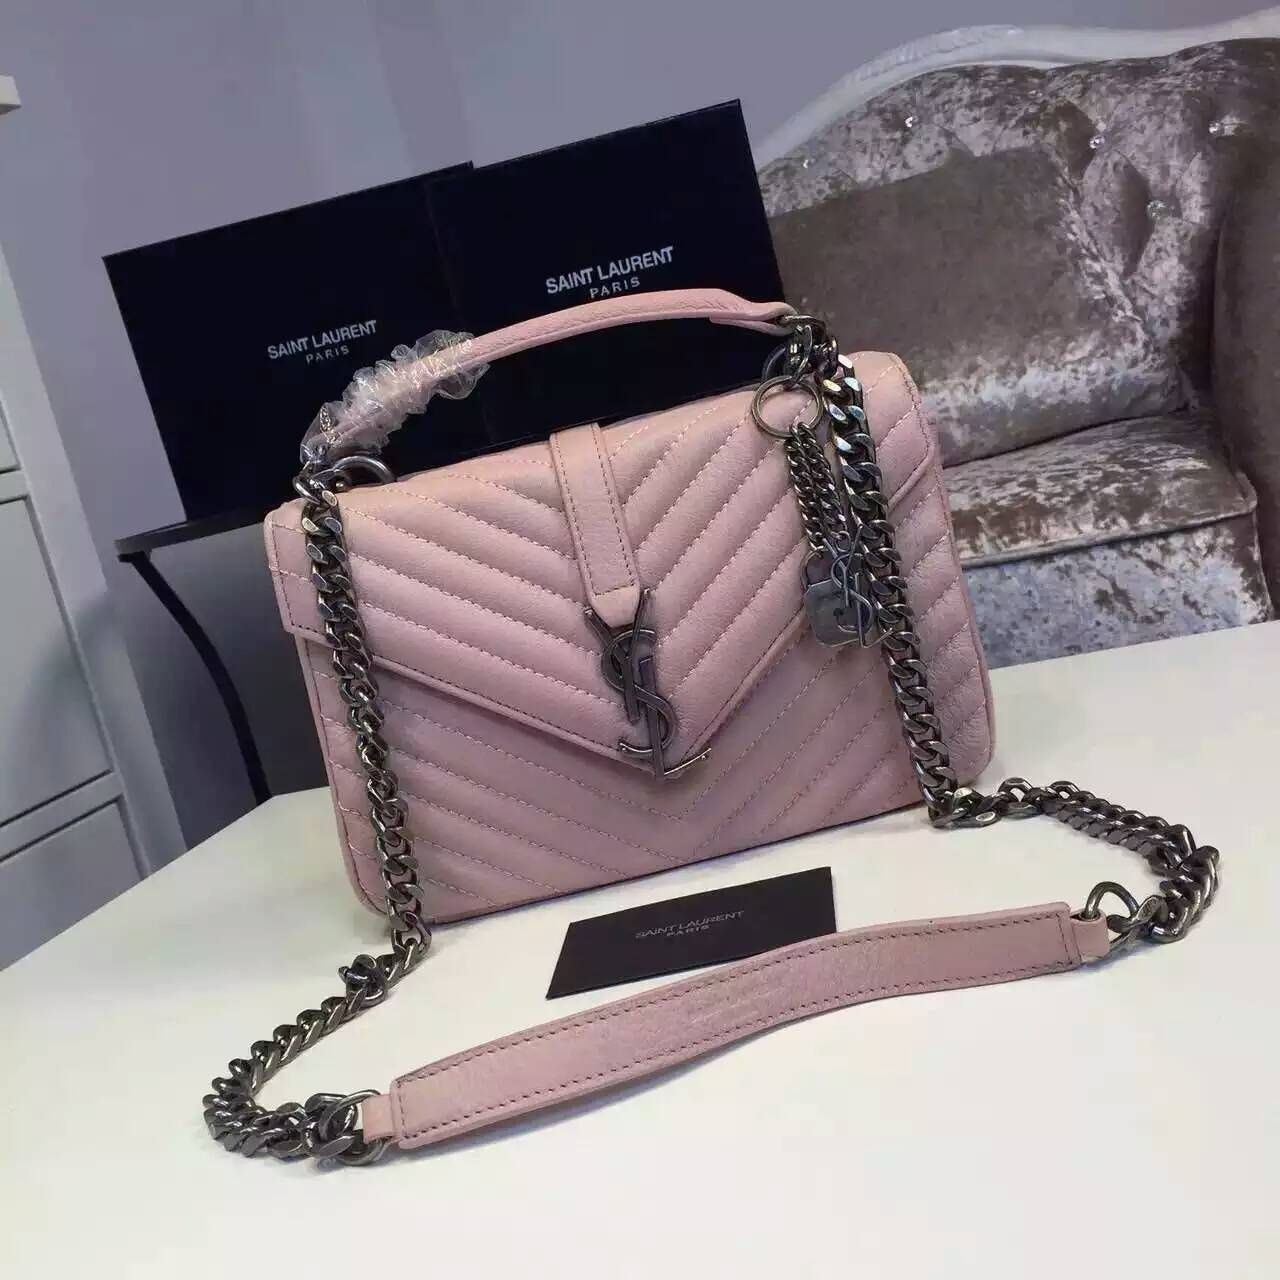 89e44332c8ad4 2016 New Saint Laurent Bag Cheap Sale-Saint Laurent Classic Medium COLLEGE  MONOGRAM Bag in Pale Pink MATELASSE Leather